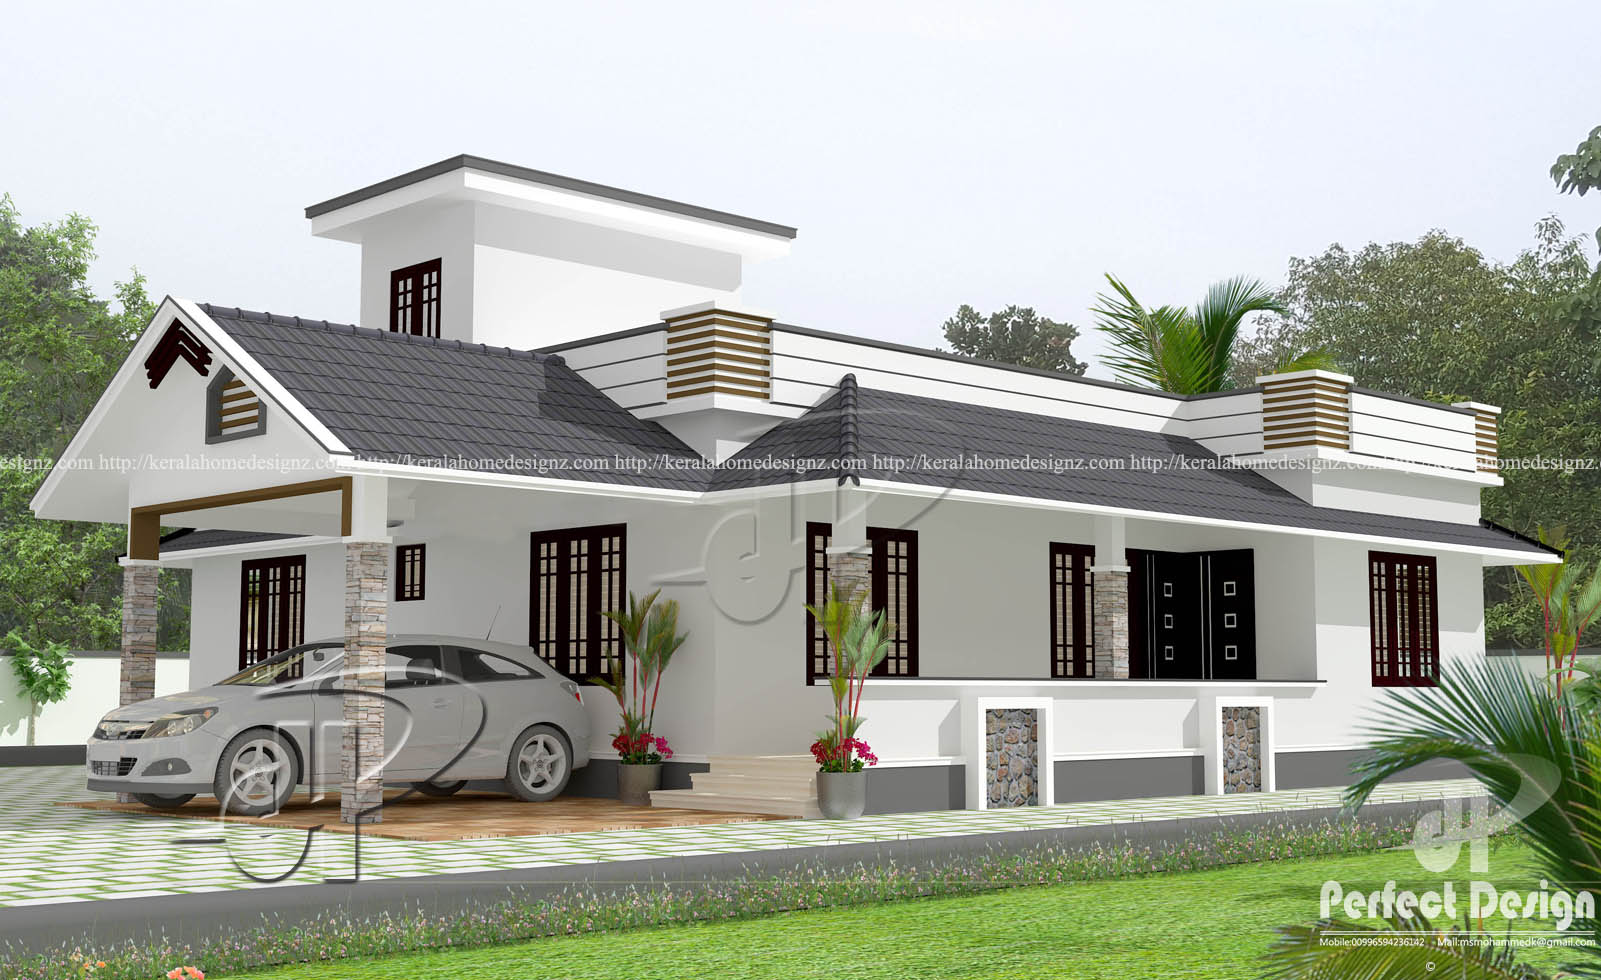 1181 Sq Ft Kerala Home Designs Kerala Home Design